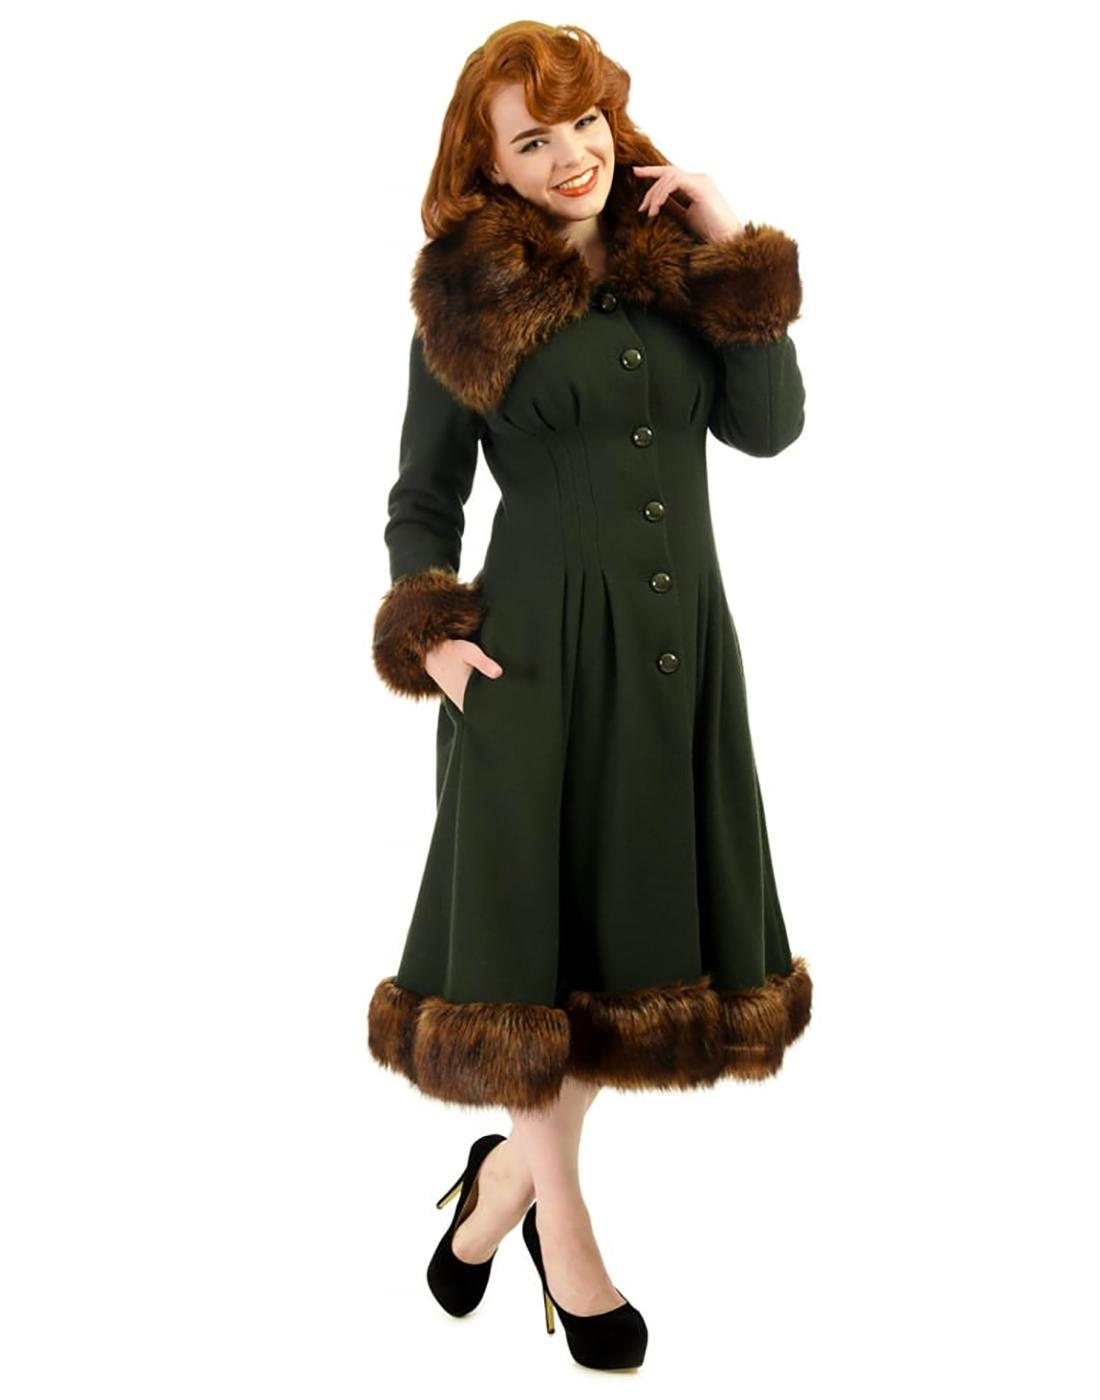 Pearl COLLECTIF Vintage 50s Faux Fur Coat in Green